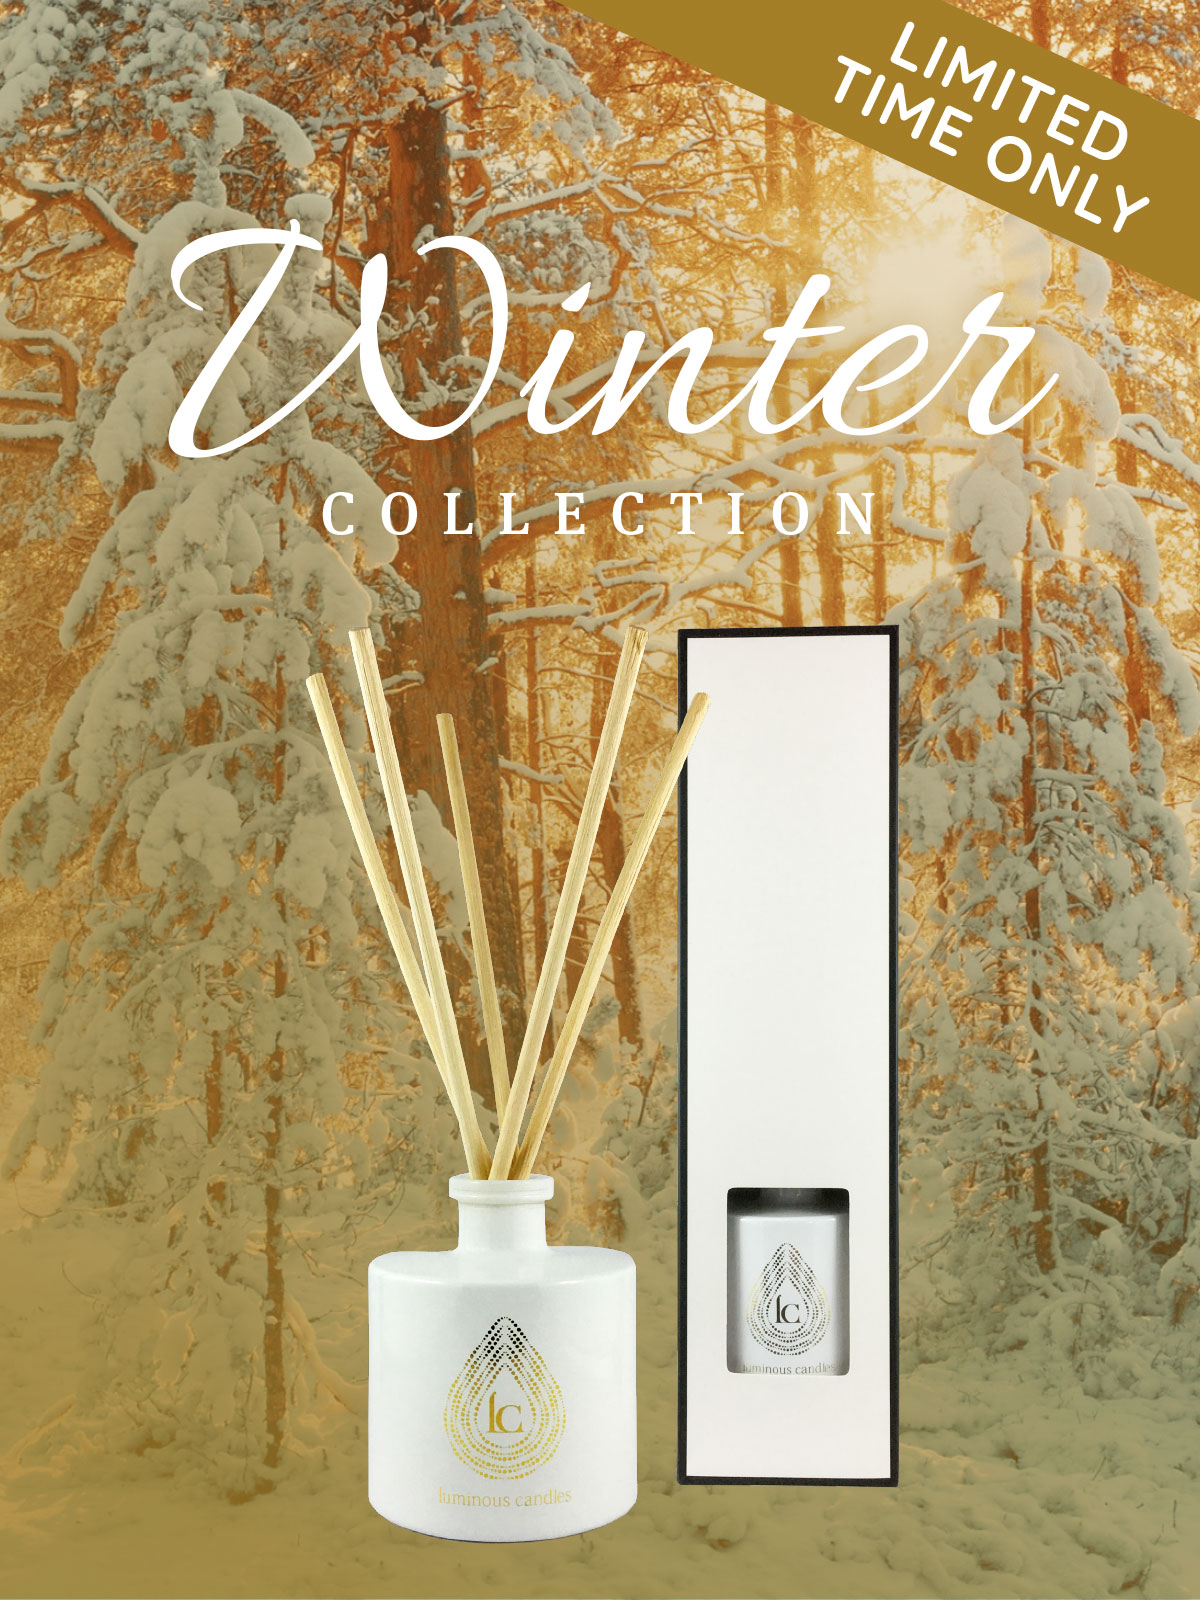 LC-Winter2020-Collection-Product-Image-8